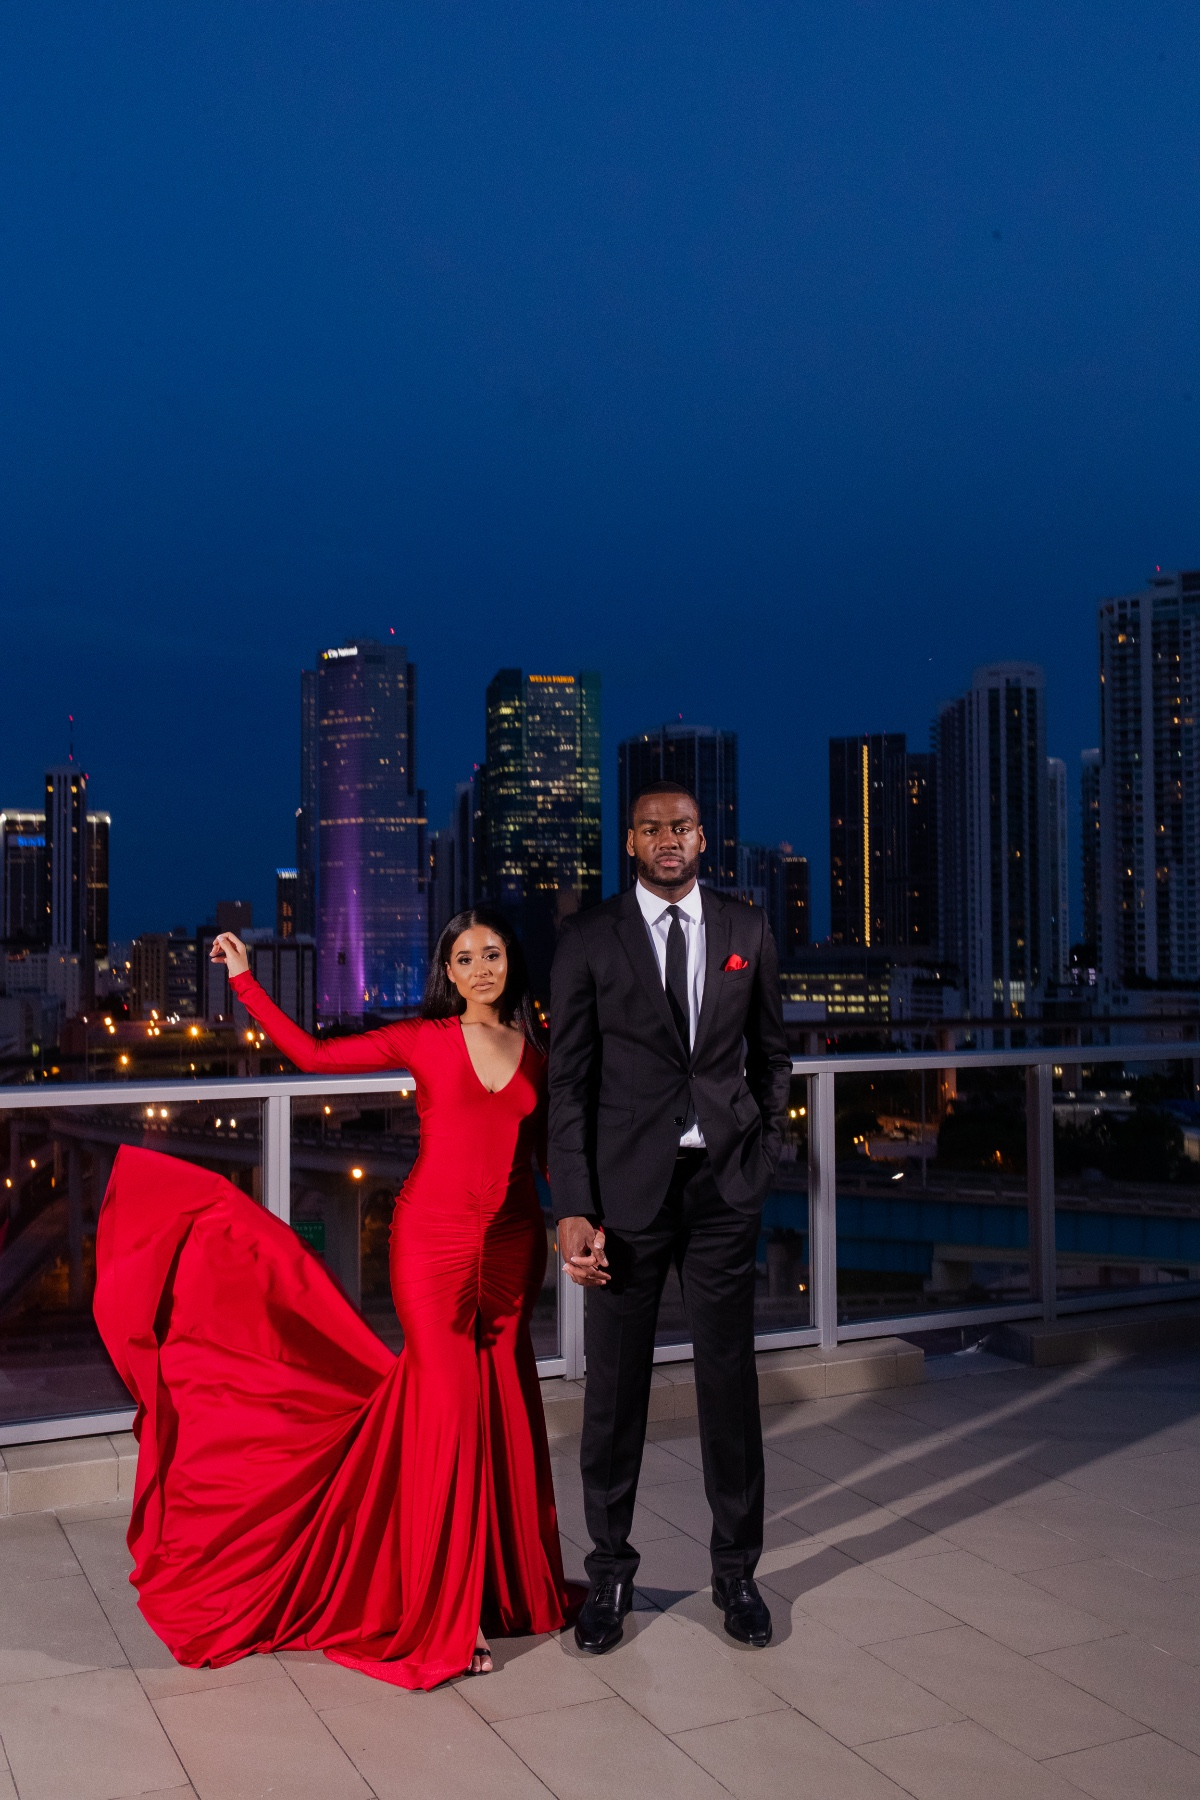 Elyse Hart-Shelton and Alec Burks engagement photos